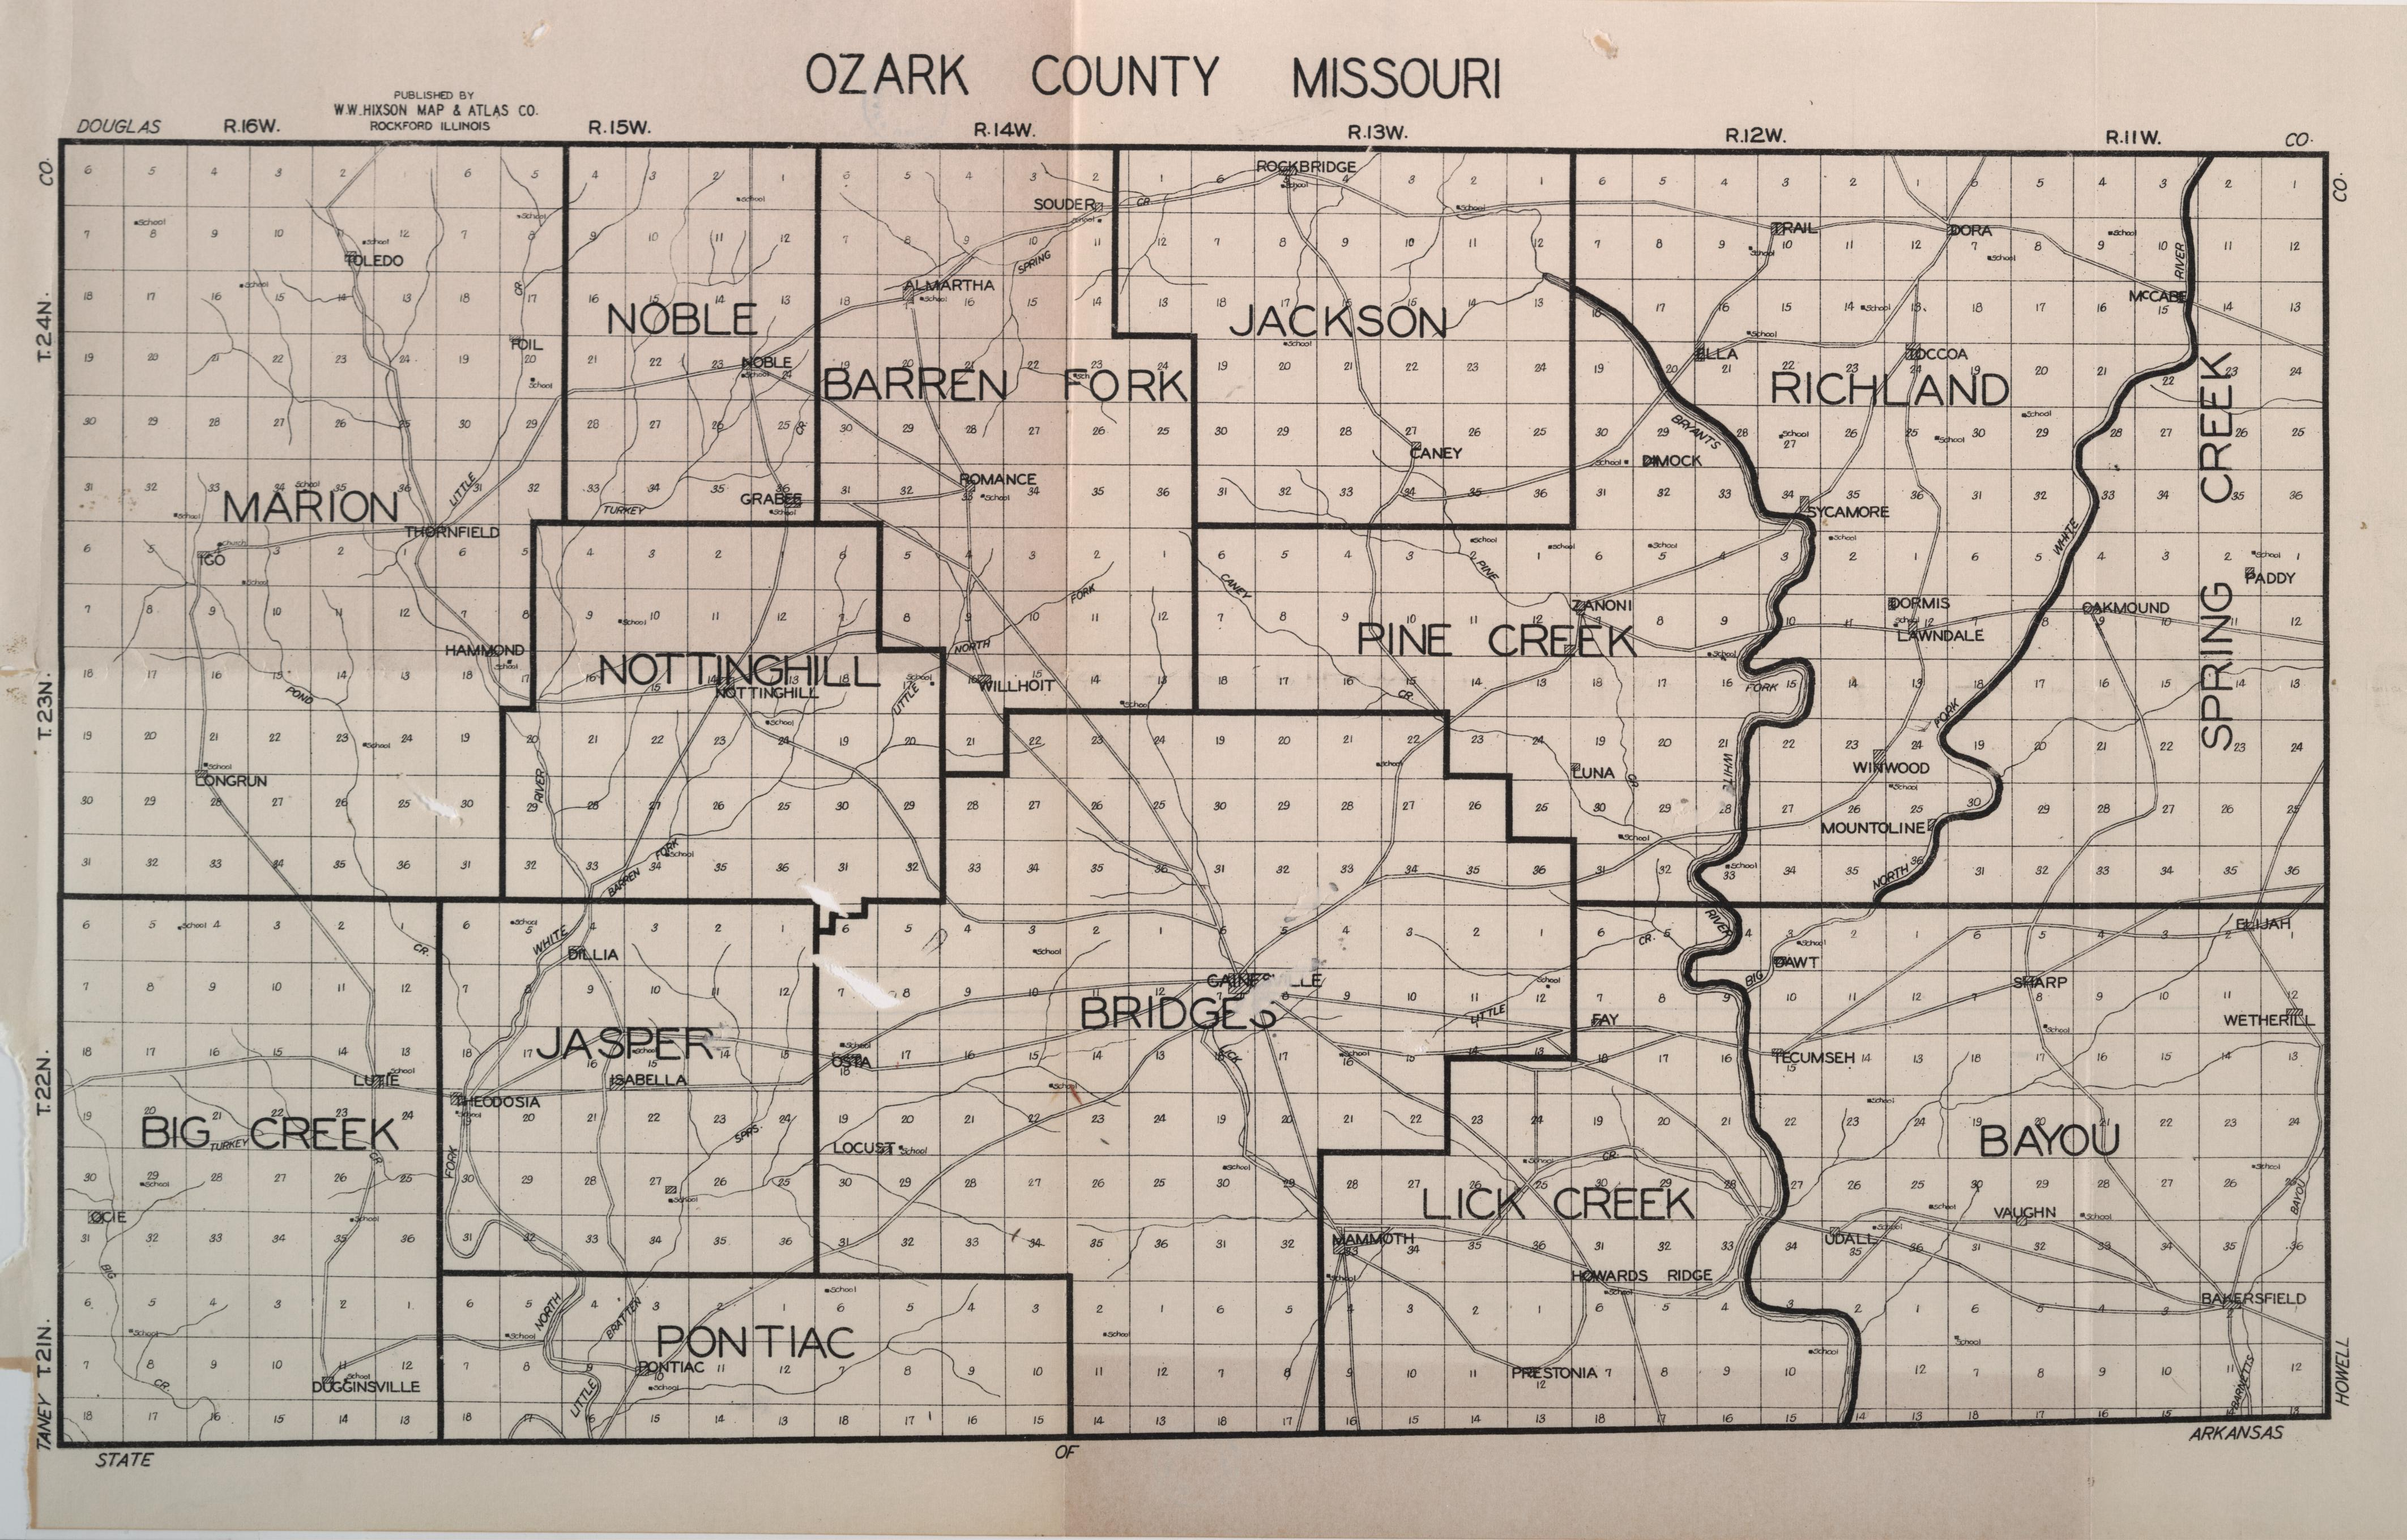 County info links plat book map for ozark county entire county aiddatafo Choice Image